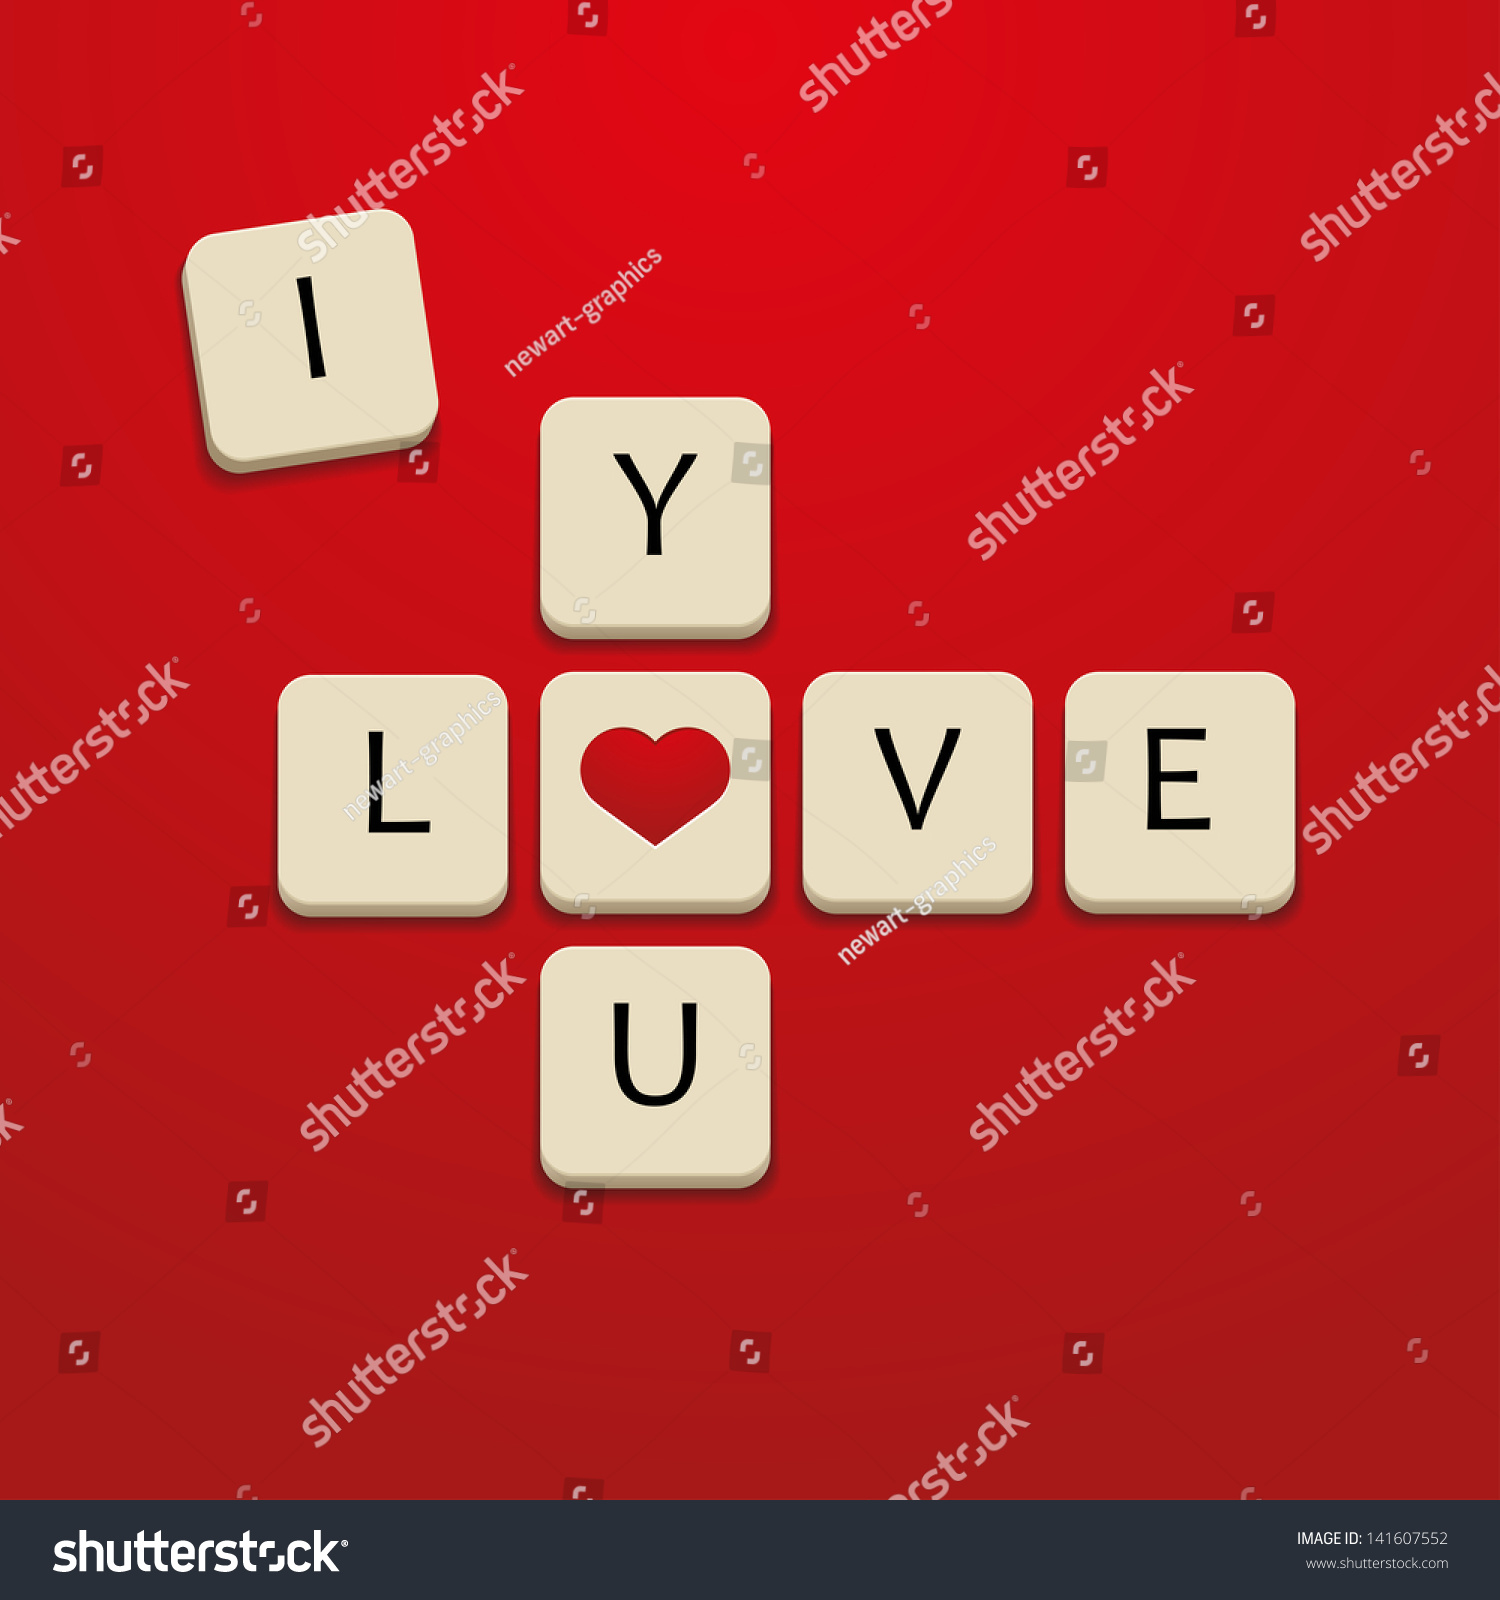 Love You Letters Stock Vector Shutterstock